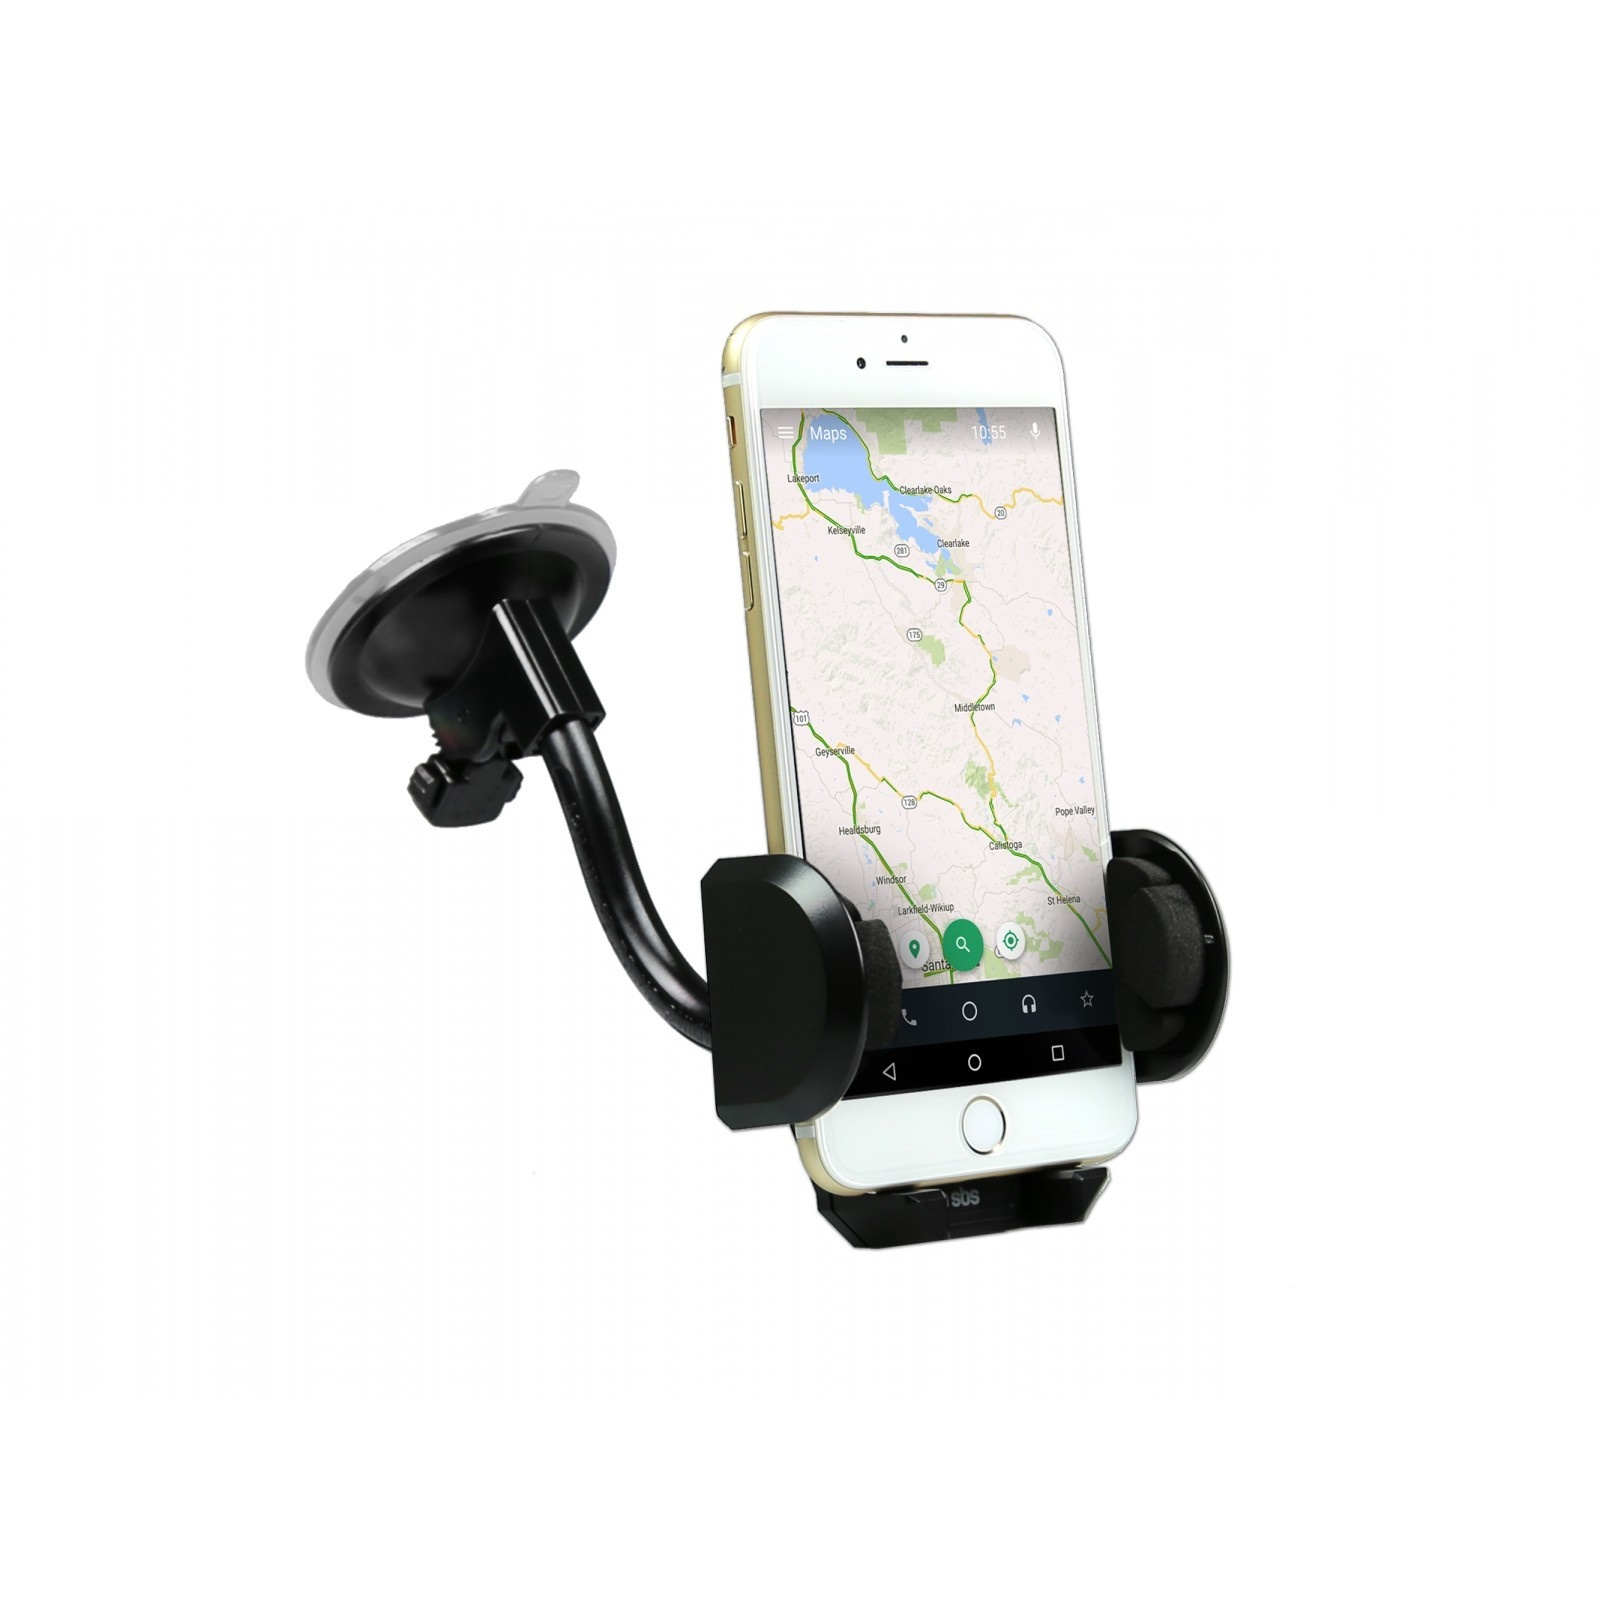 SBS Car holder for smartphones up to 6 inch, adjustable shaft, suction cup for dashboard and windshield